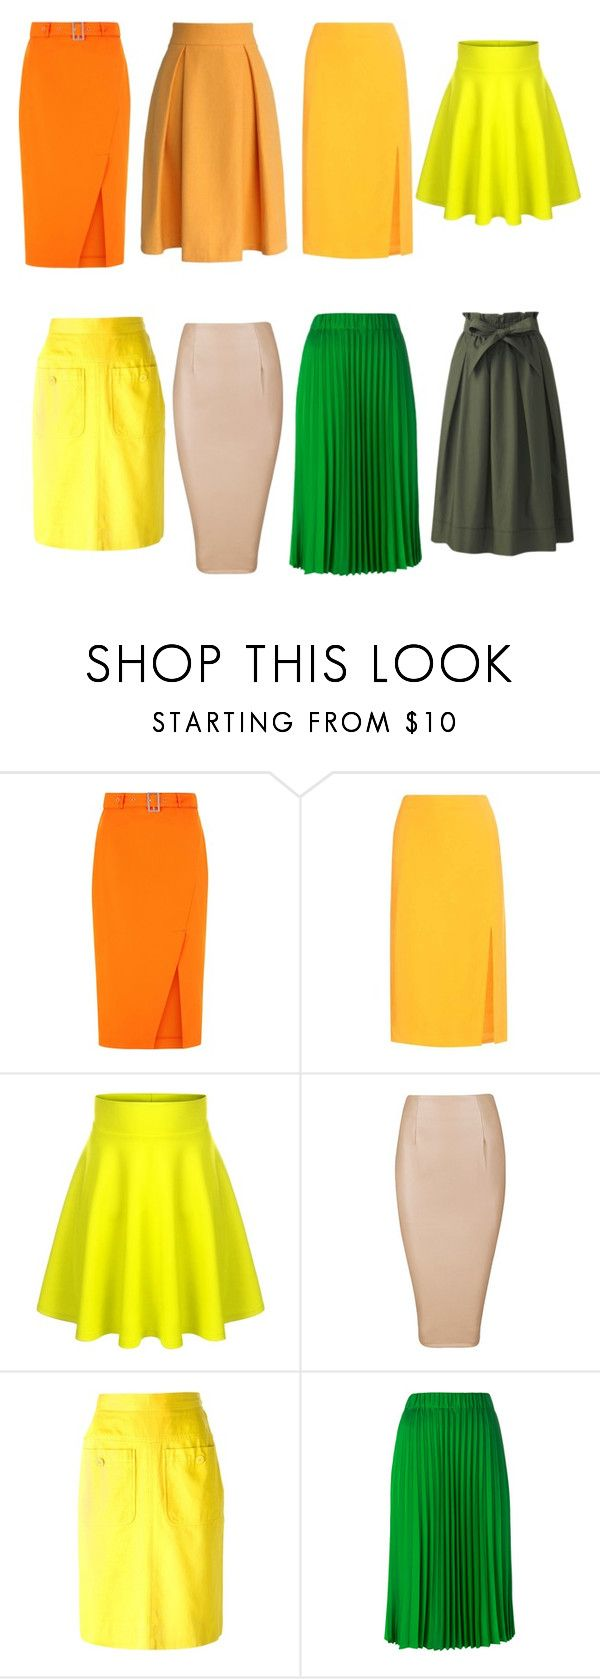 """юбки желто-зеленые"" by tamaraatma on Polyvore featuring Altuzarra, Yves Saint Laurent, P.A.R.O.S.H. and Uniqlo"